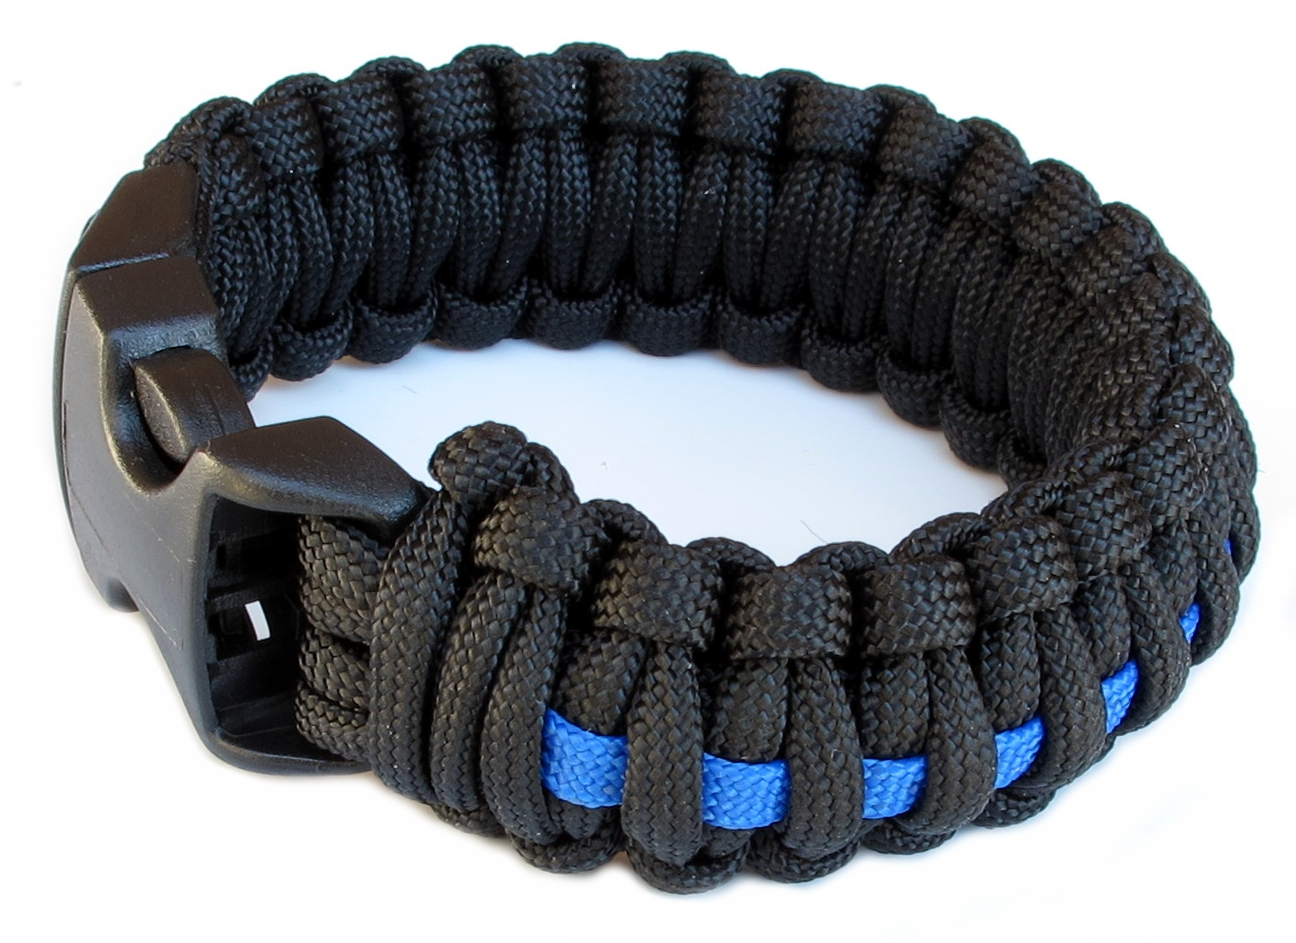 Breaking News! Survival Straps saves Halloween! Customer, Travis N., shares how his Survival Strap Bracelet stopped what could have been a catastrophe!